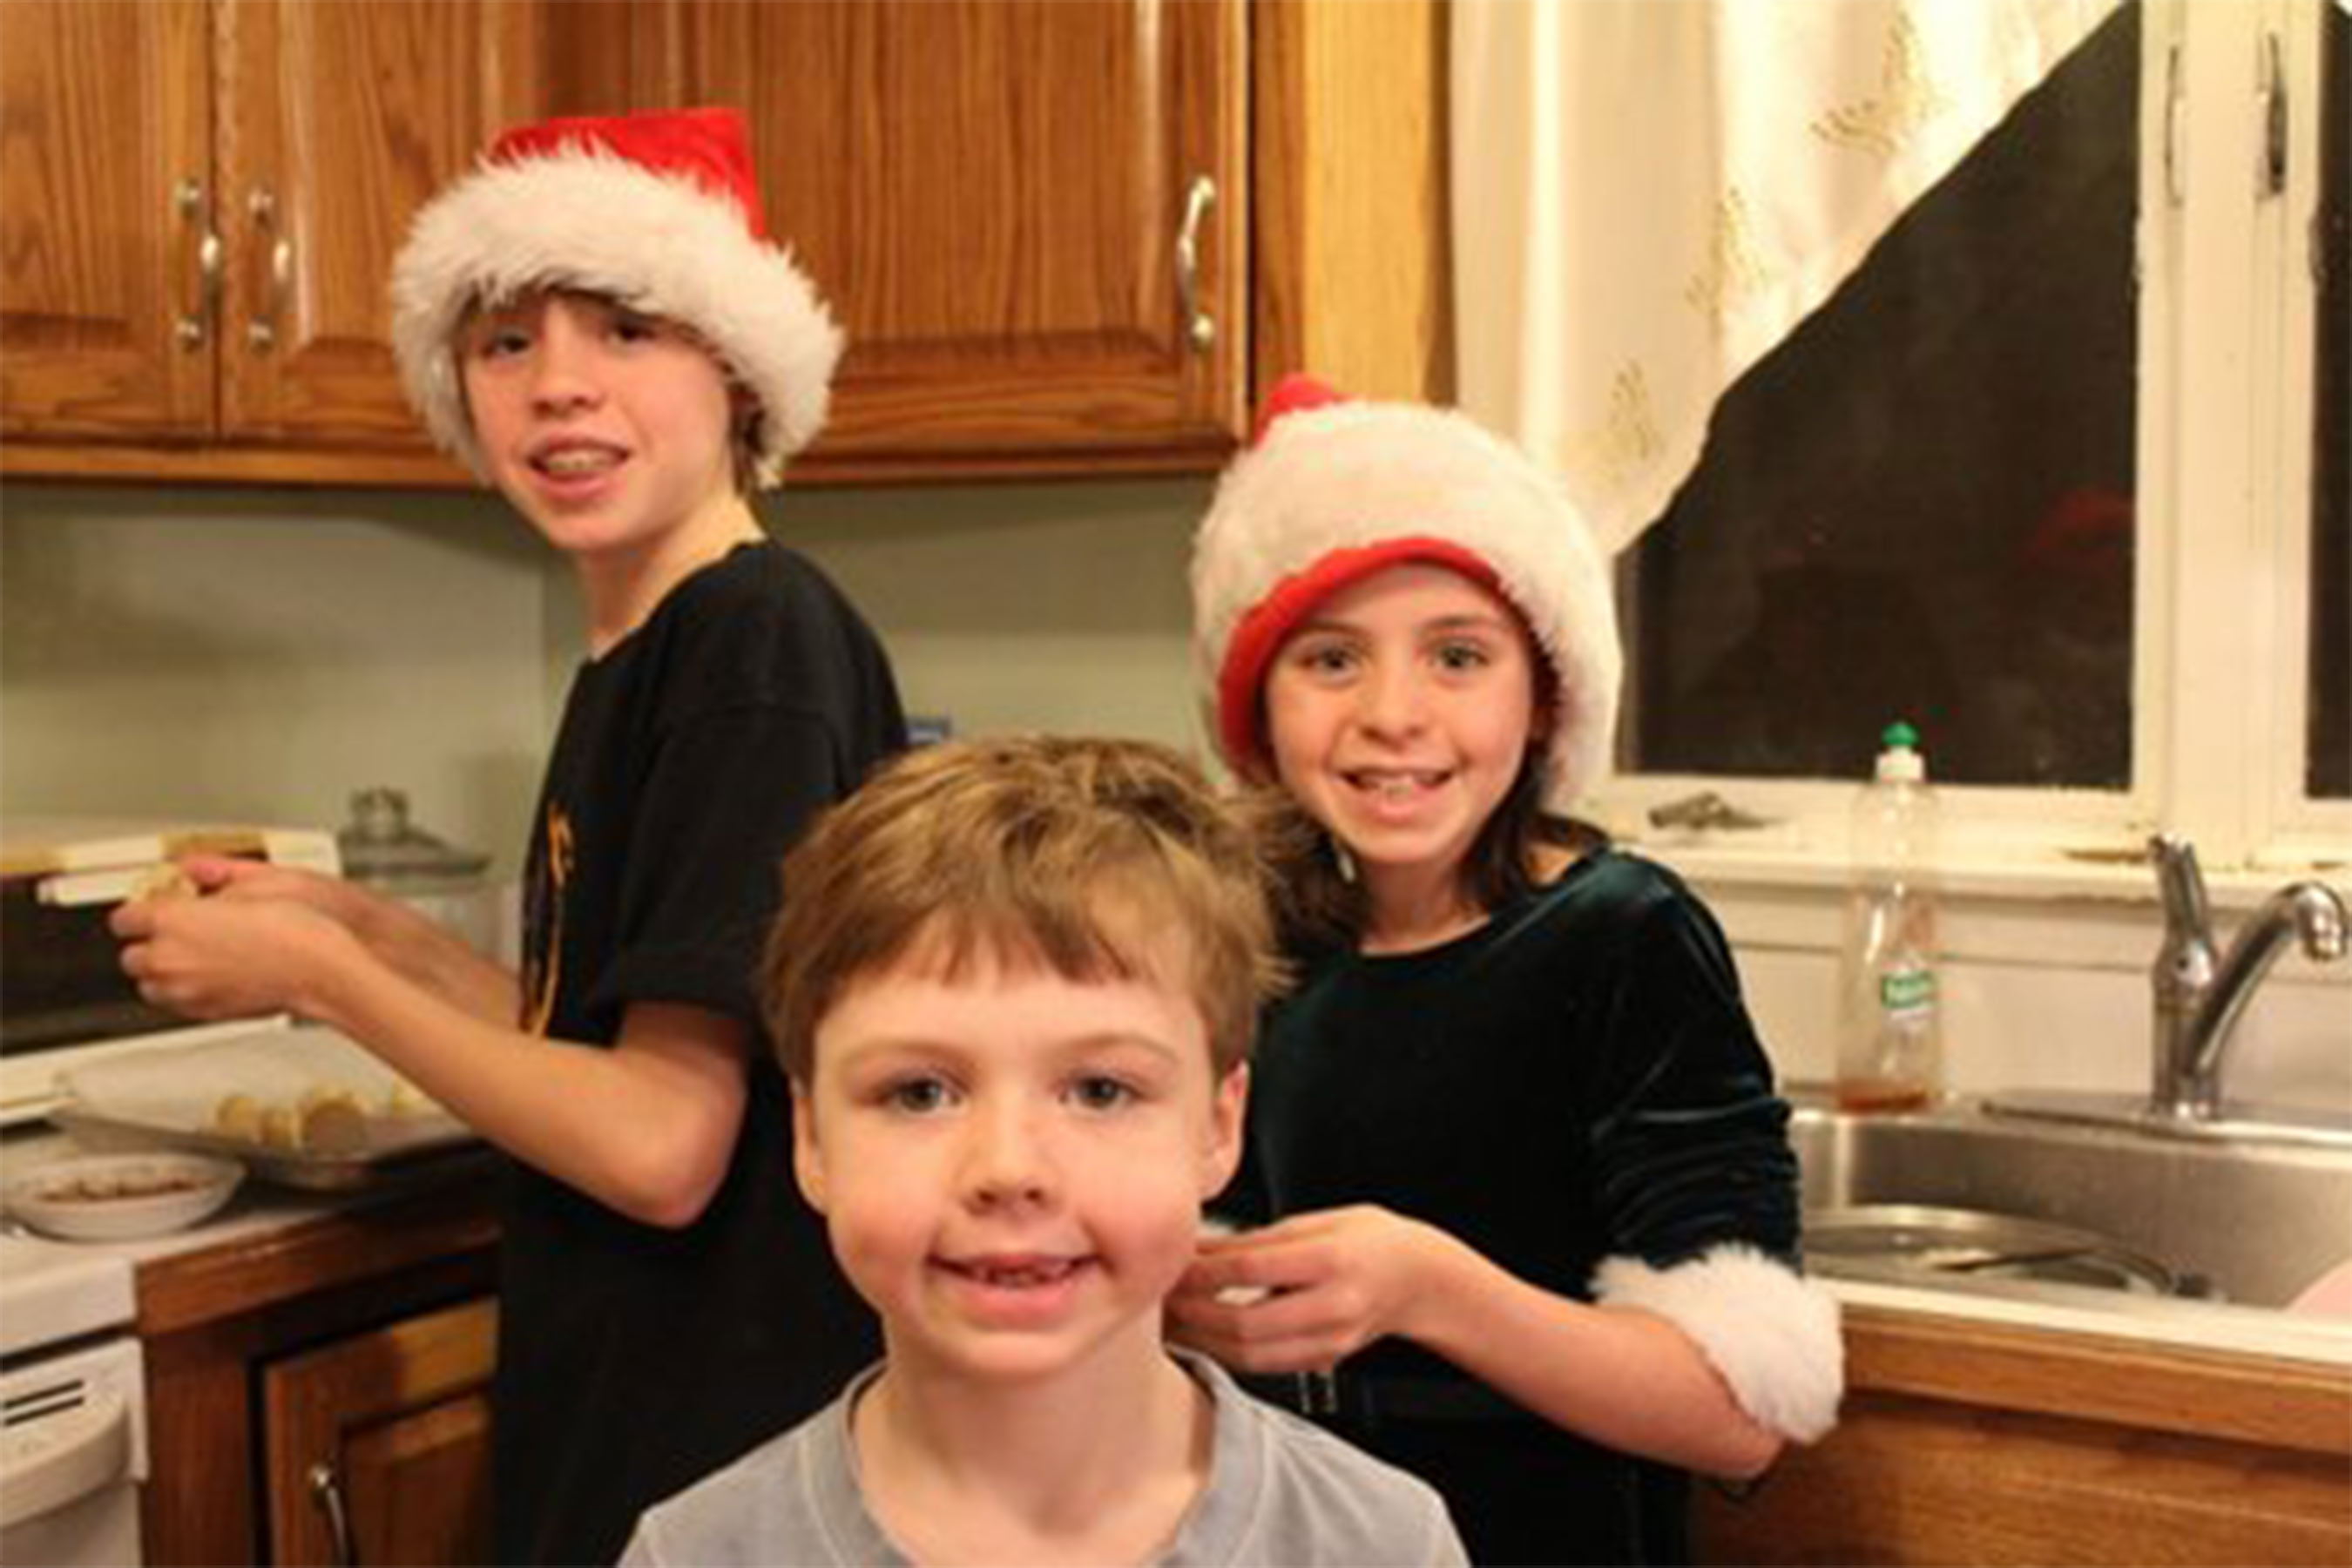 James Daniel and Natalie Barden Christmas Hats